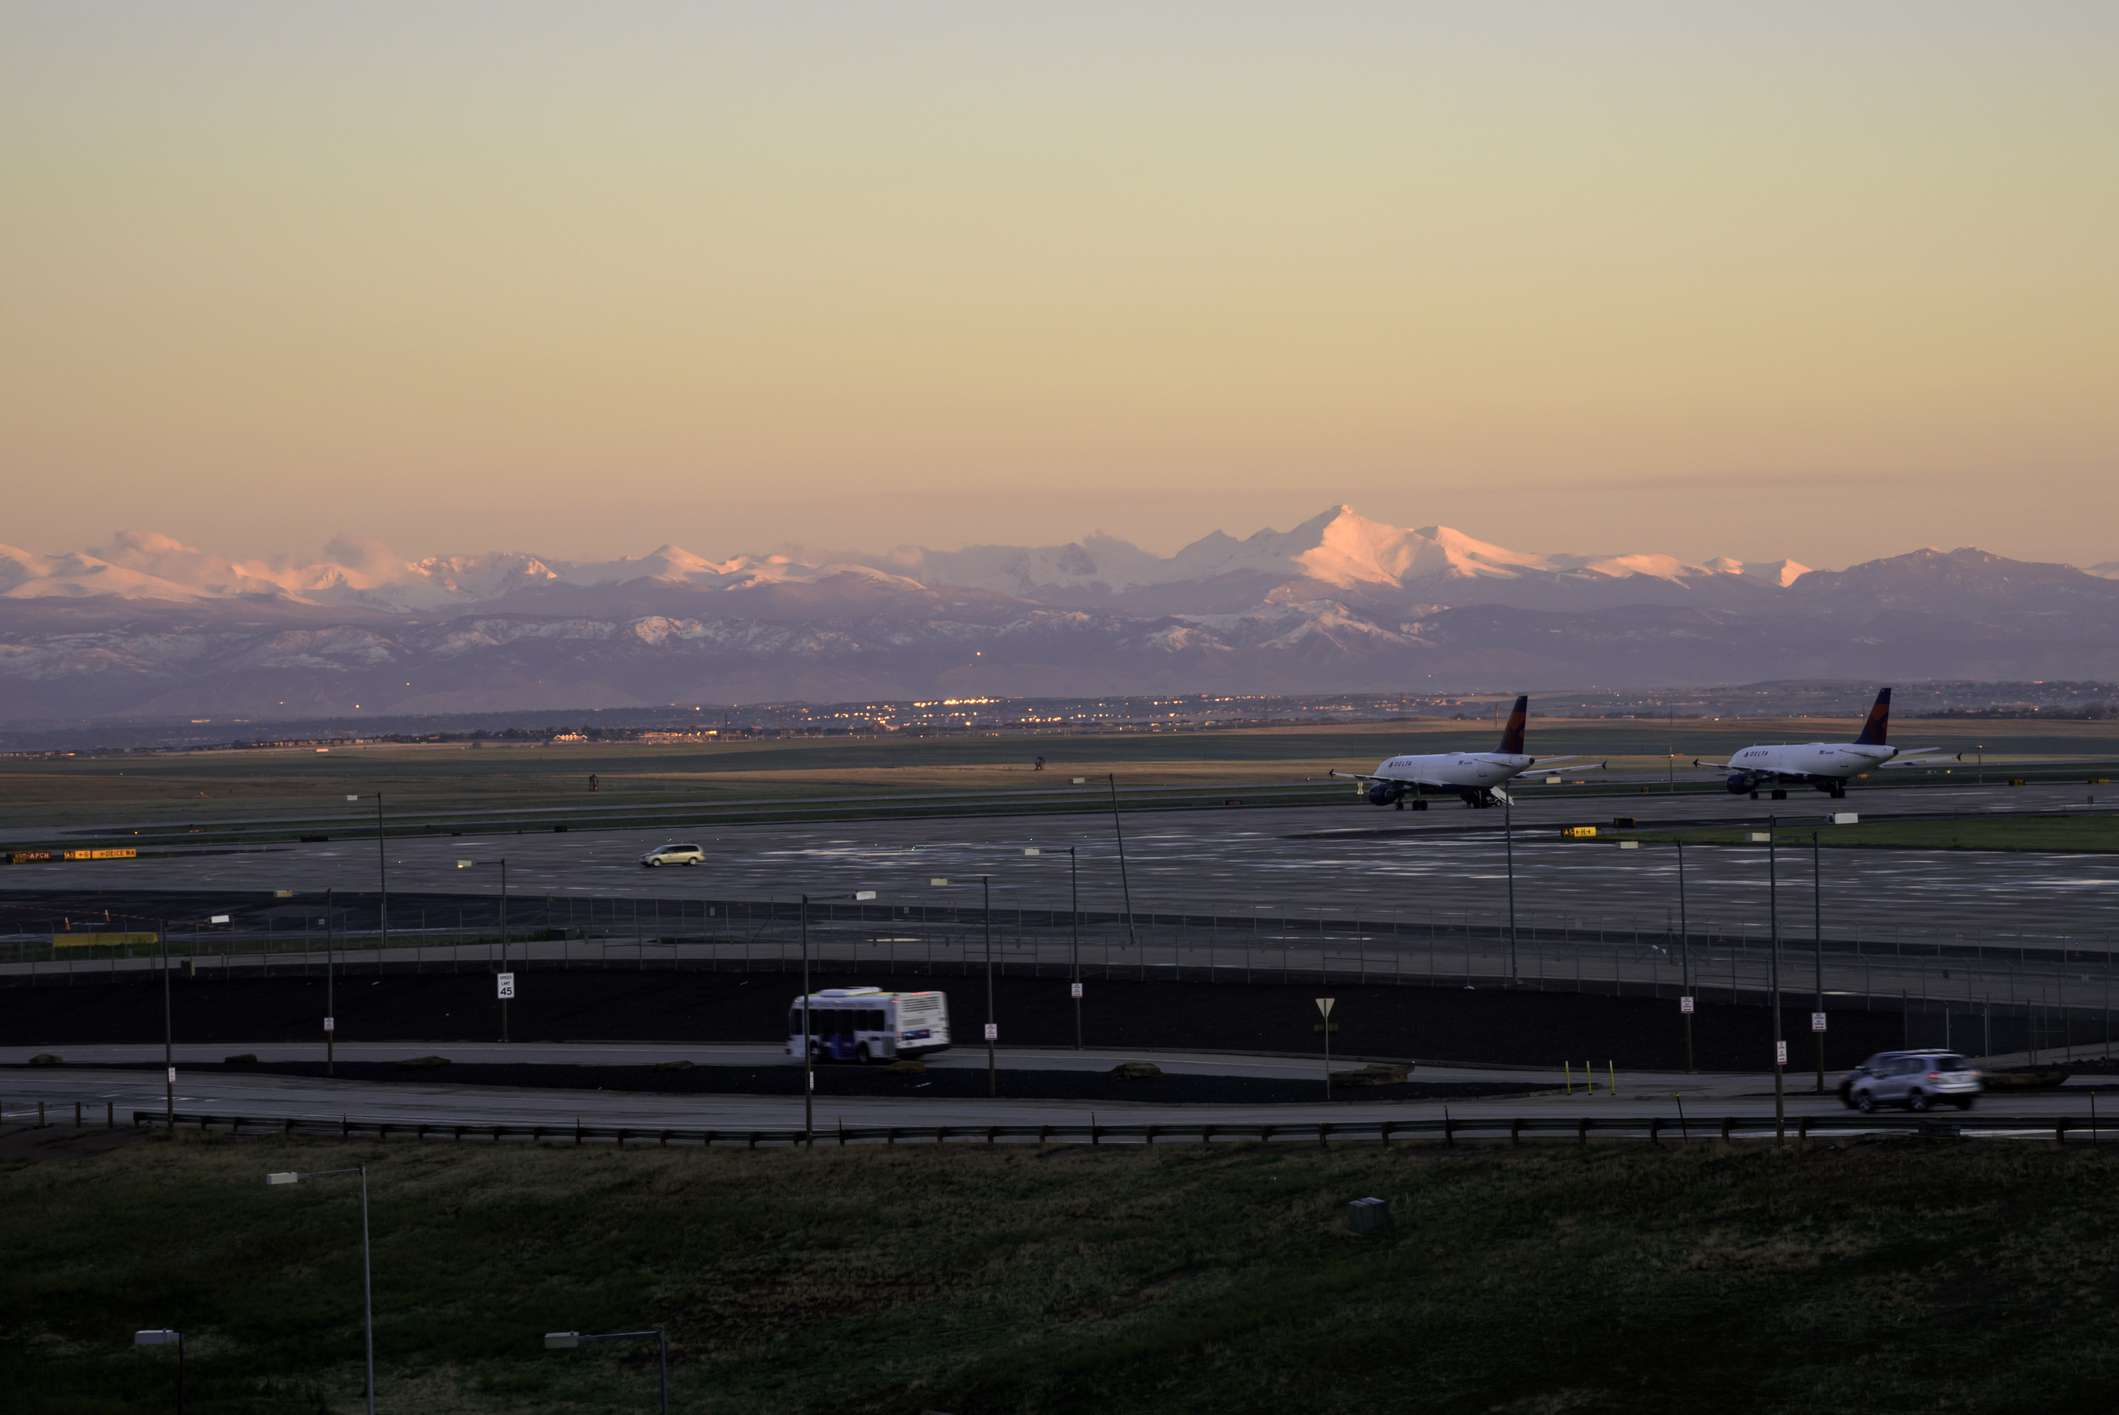 Denver International Airport at sunrise with the Rockies in the background